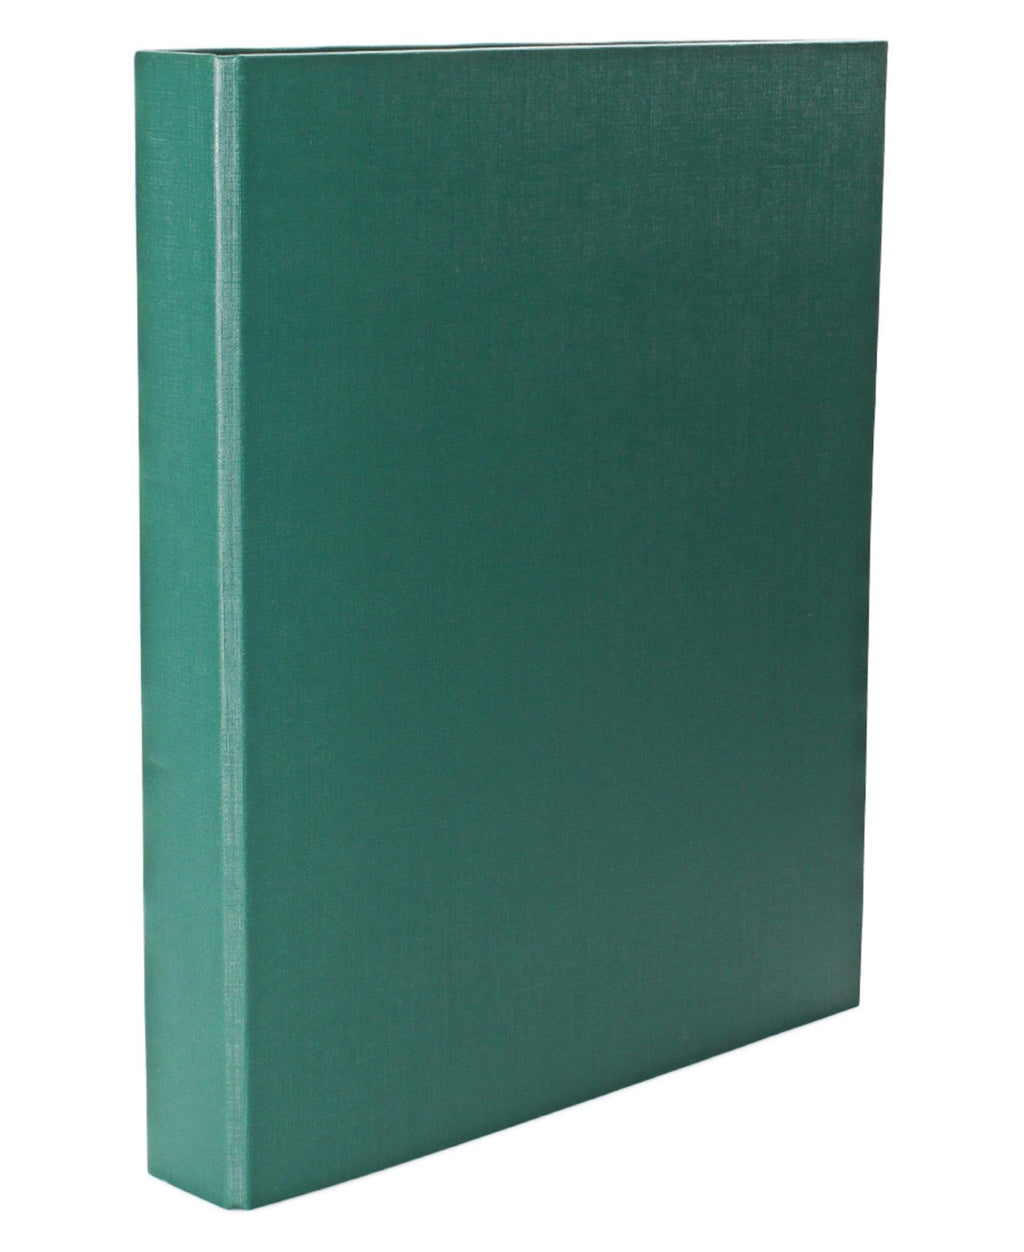 Marlin PVC Ring Binder File  - Green